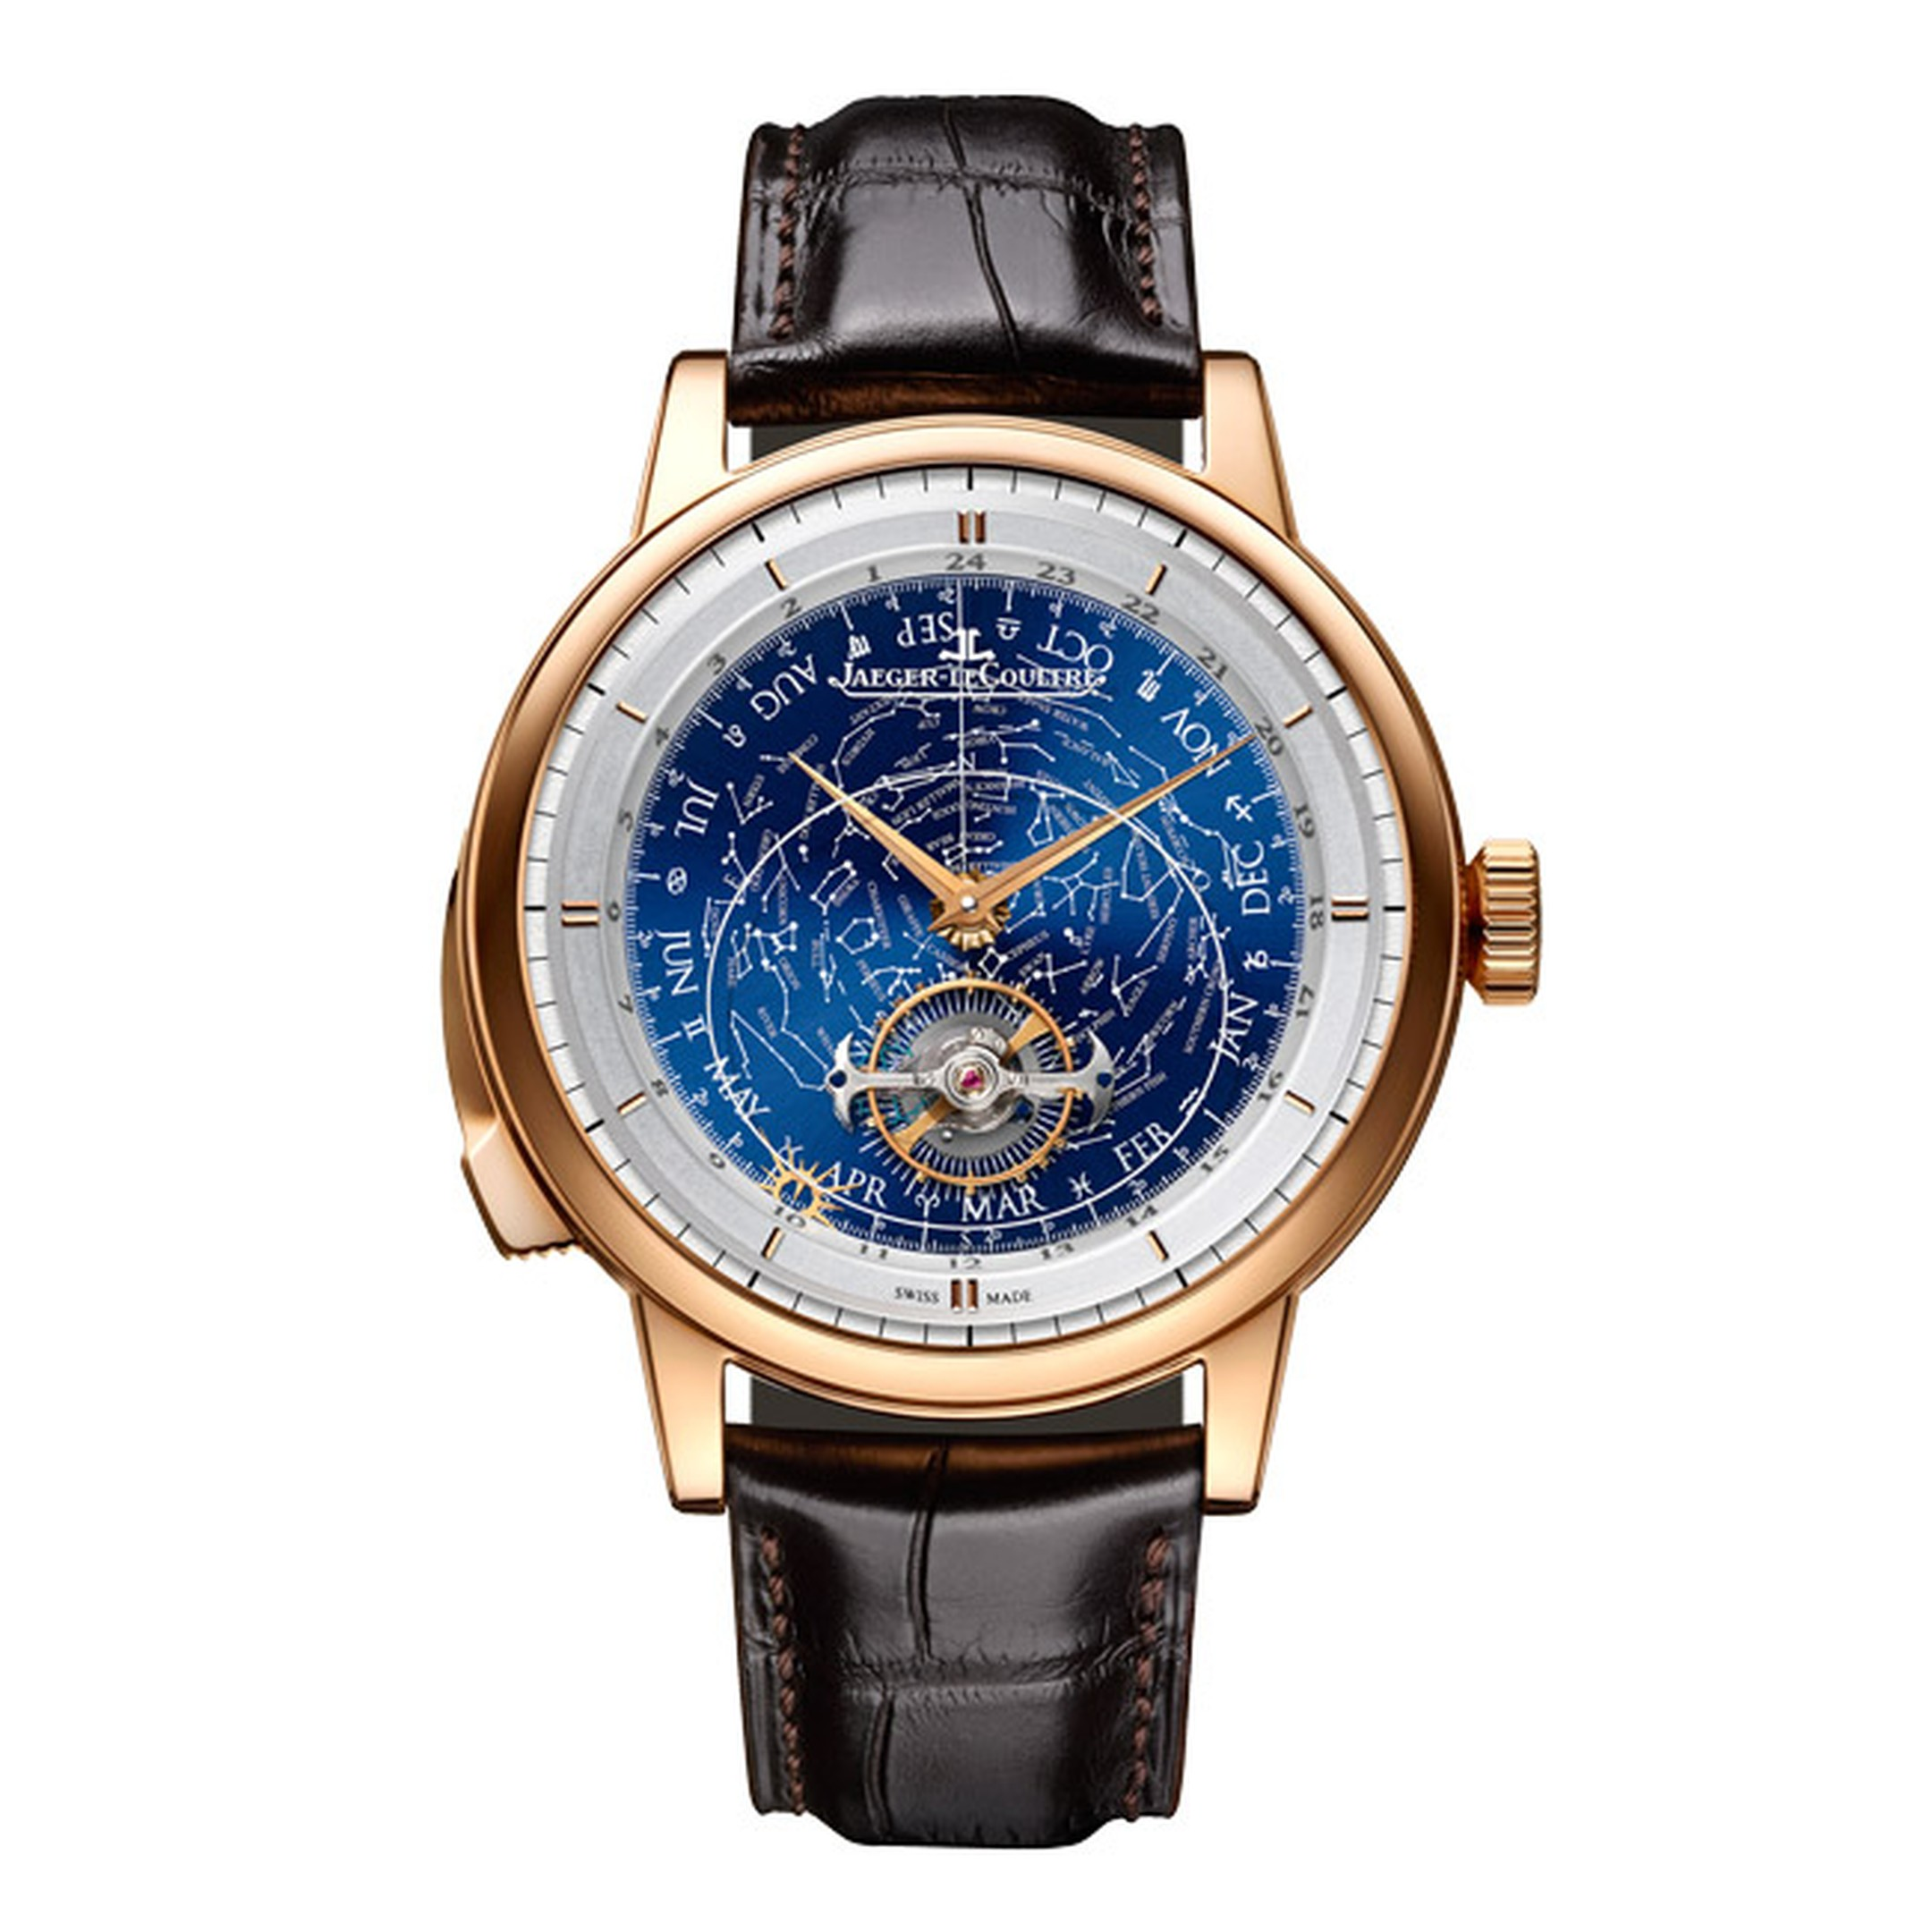 JLC Master Grand Complication Main